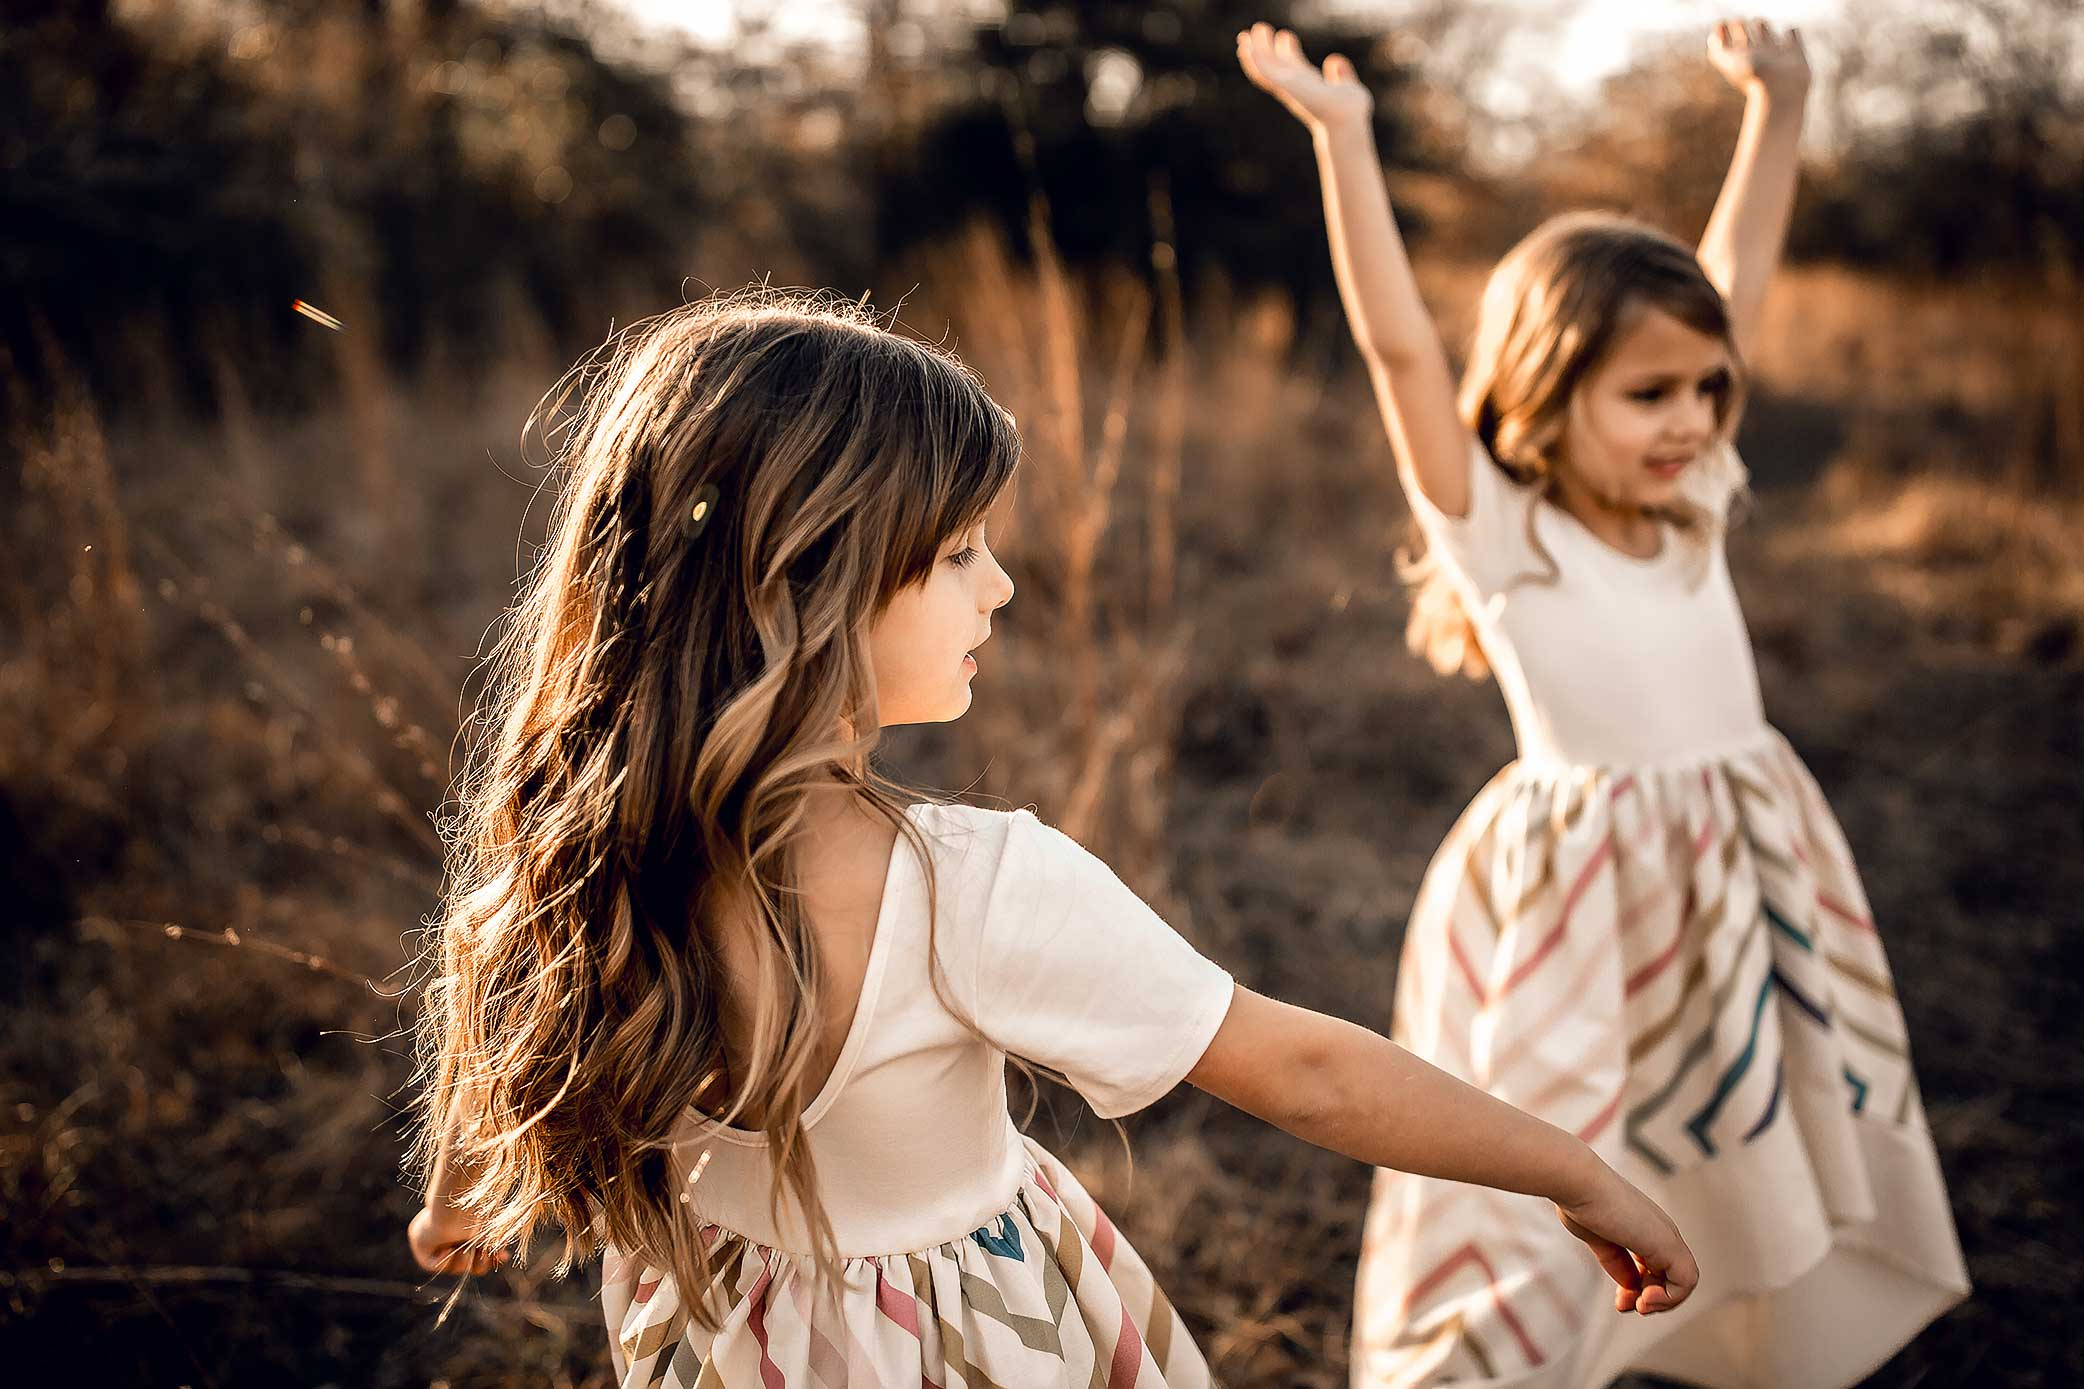 shelby-schiller-photography-family-twins-dancing.jpg